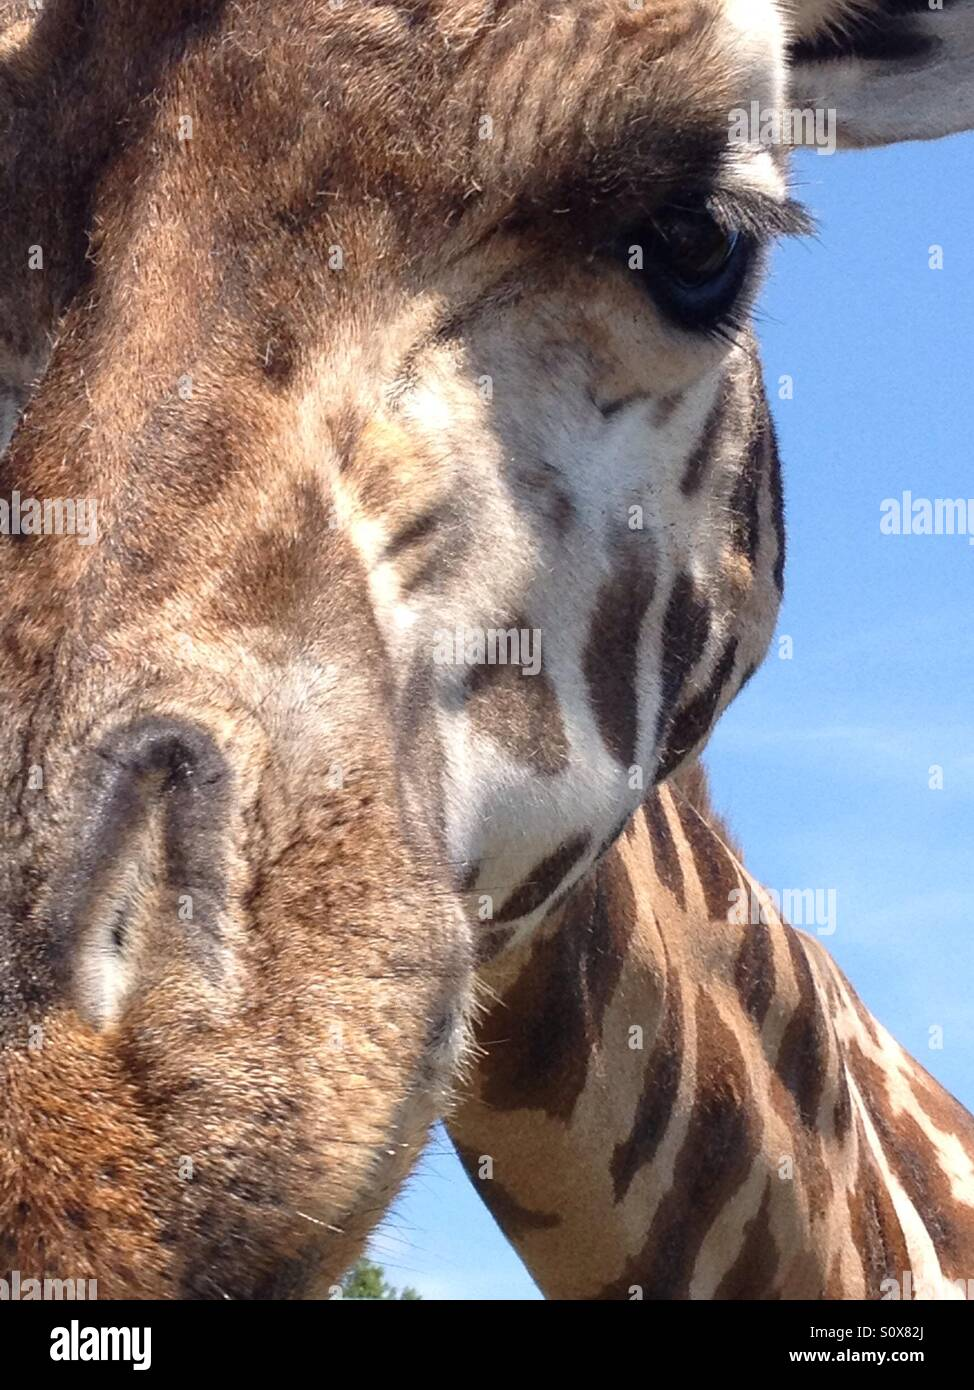 Visage de girafe Photo Stock